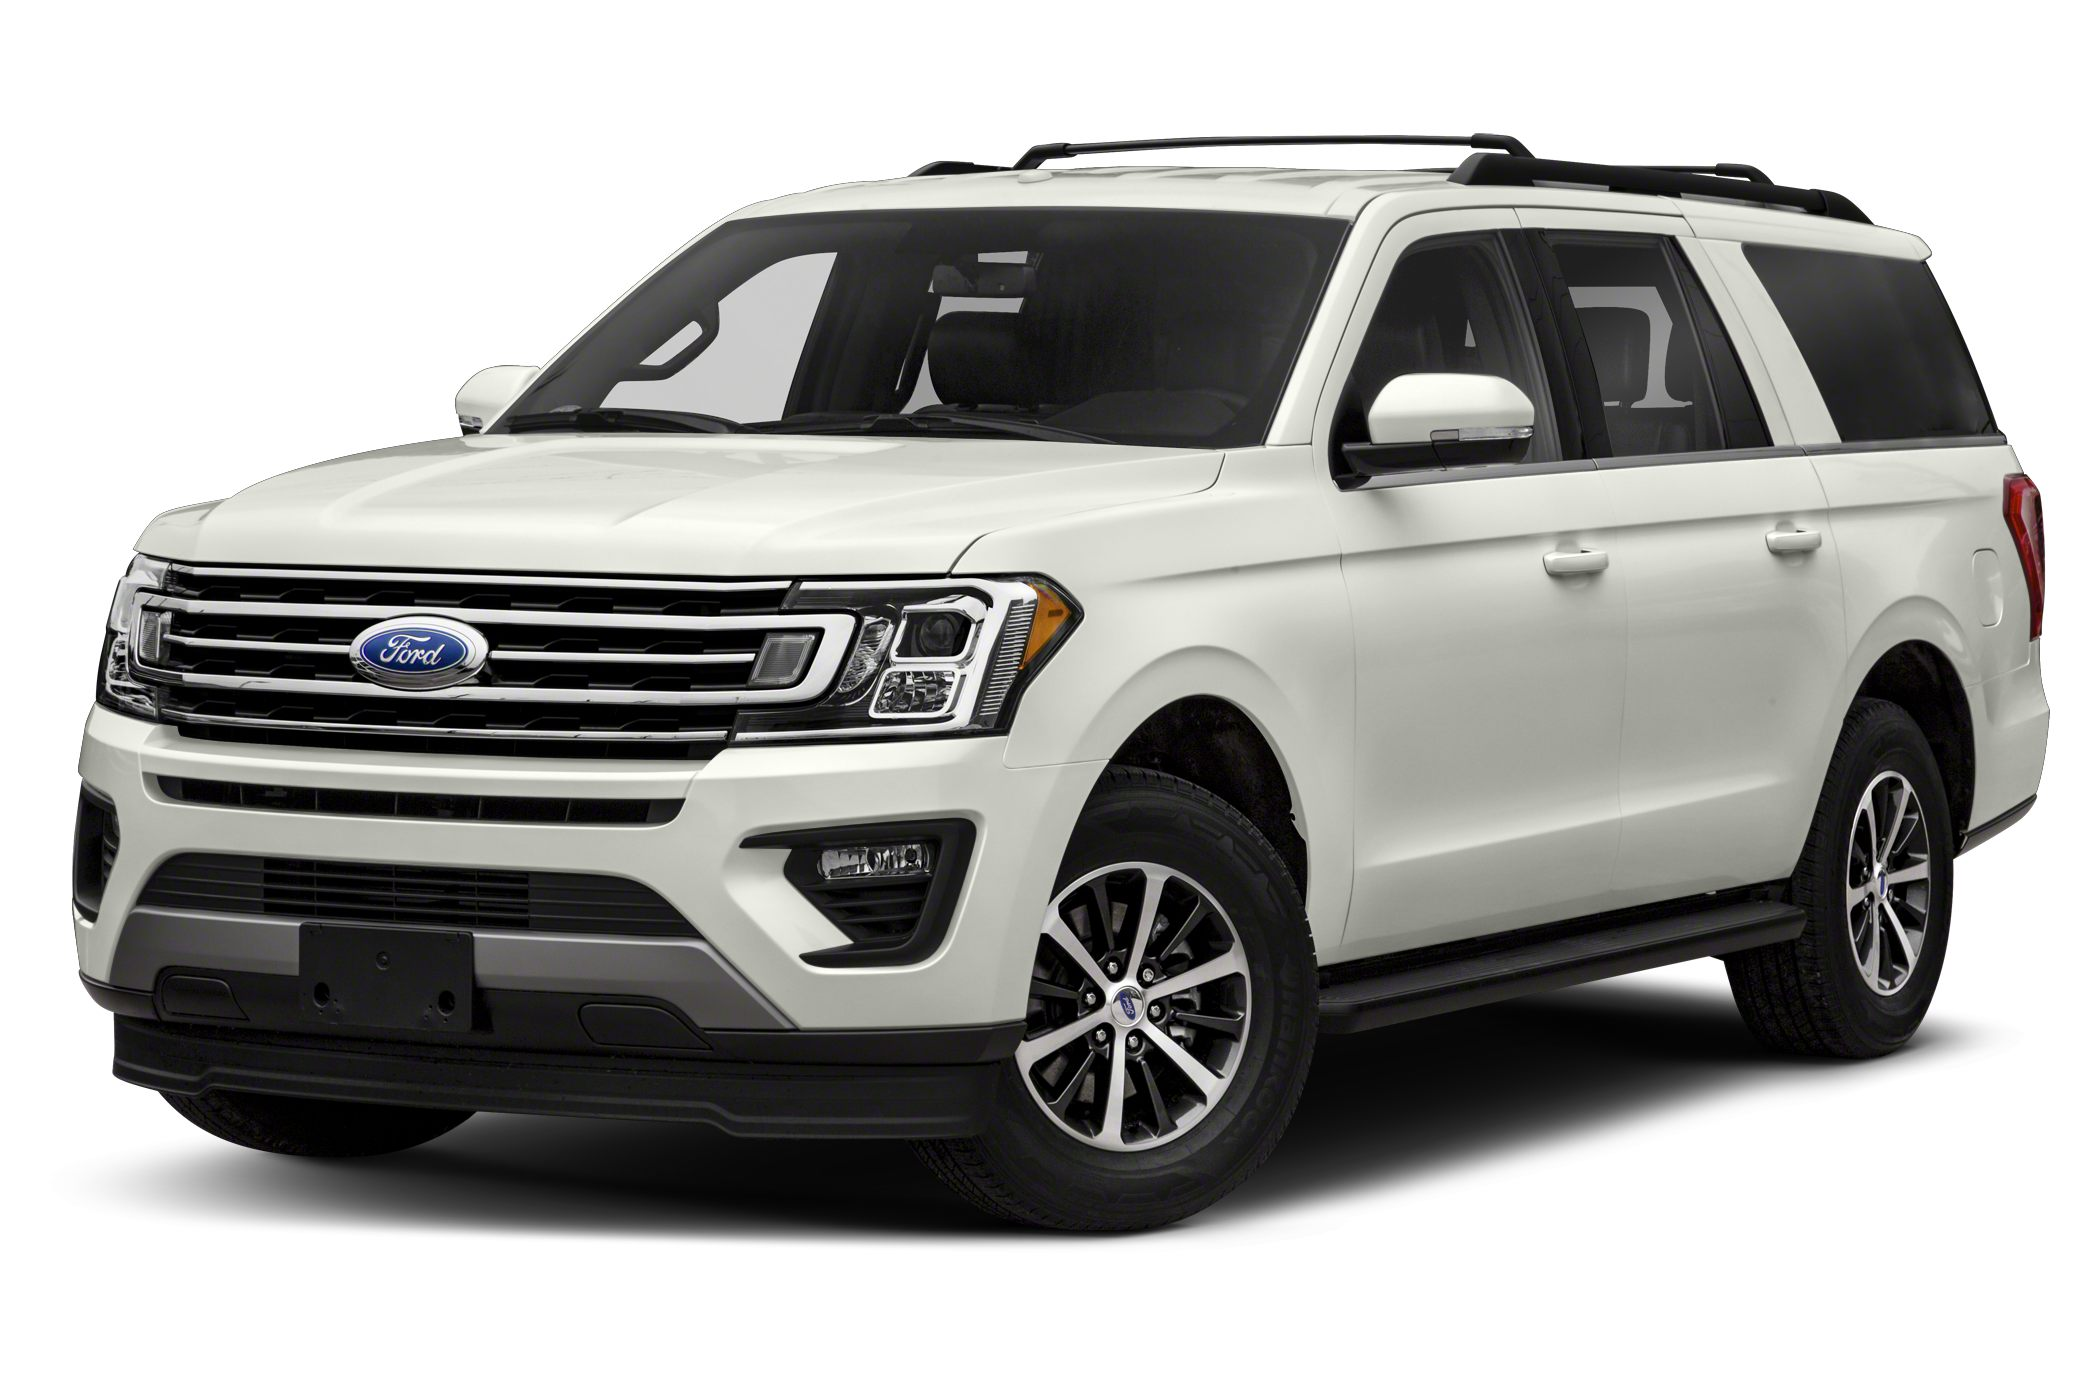 2018 Ford Expedition Deals, Prices, Incentives & Leases, Overview - CarsDirect